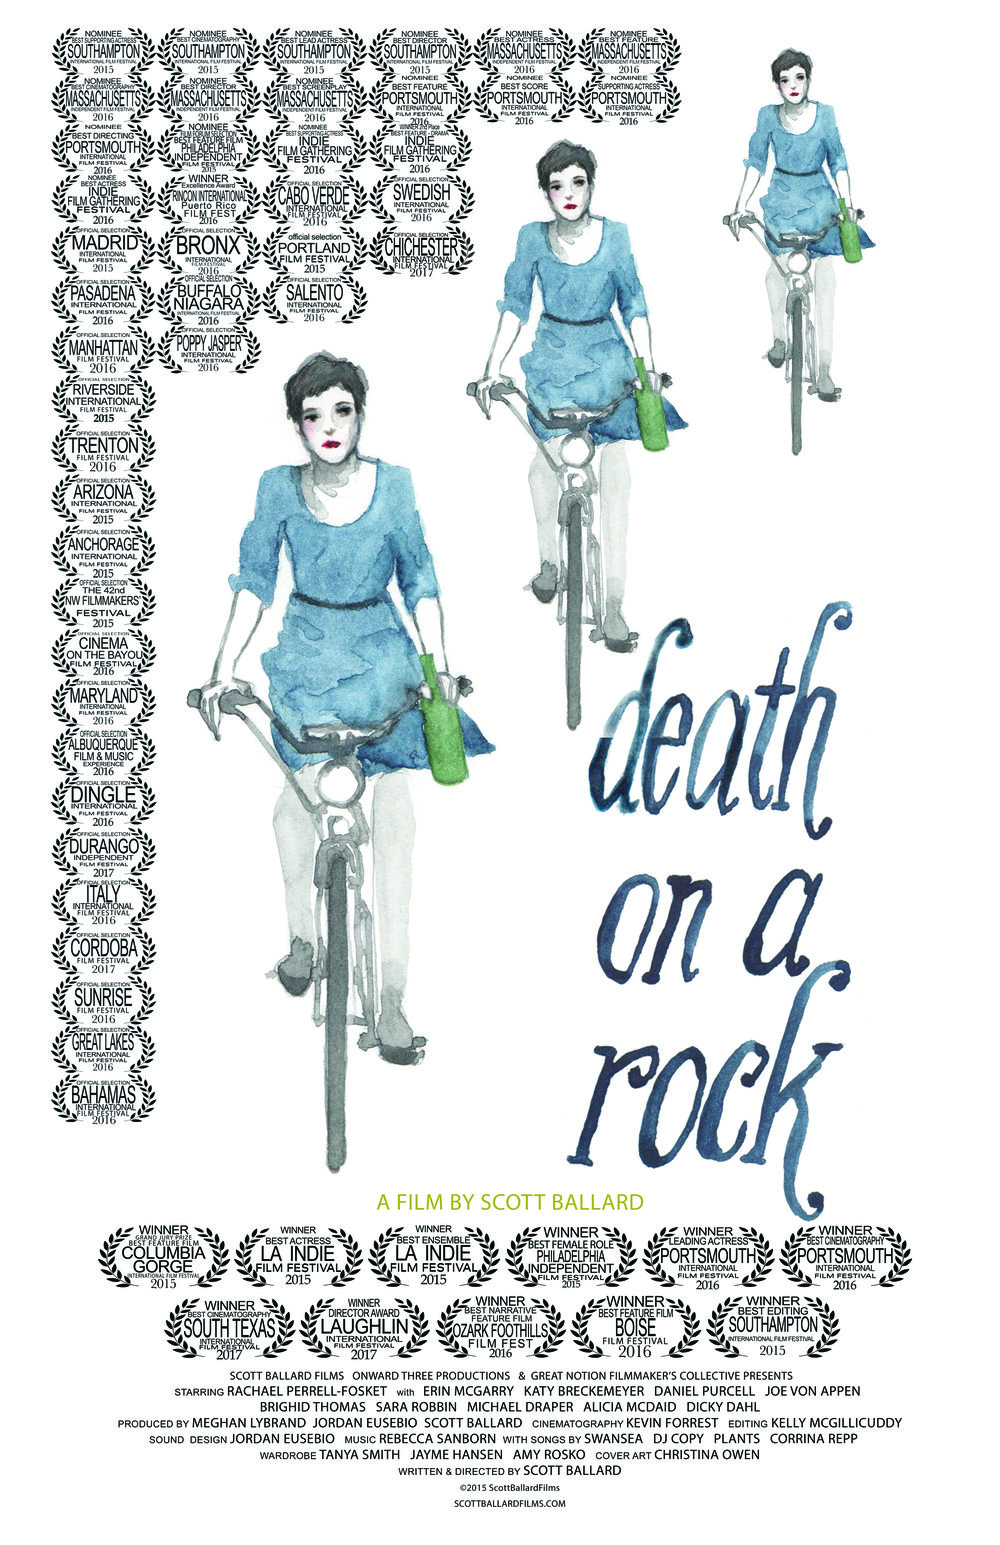 Death on a Rock - Written & Directed by Scott BallardThe film follows a young woman coming to terms with a trying event in her life. Lillian's (Rachael Perrell Fosket) bright outlook—she loves her job in a flower shop and has a sweet budding relationship with her boyfriend— is rocked by illness. Days spent in long term care at the hospital bring reflection, desperation, and some family tension. This vibrantly shot tale follows Lillian's year of happiness, pain, and growth, told through flashbacks and drifting between memories and shifting consciousness. Seen through a framework of loss, Death On A Rock is a bittersweet tale balanced between tragedy and levity.DeathOnARock.com / ScottBallardFilms.com /facebook.com/deathonarockTwitter: @DeathOnARock Instagram: DeathOnARock2015 - Feature Film - RAW HD - 80 Minutes